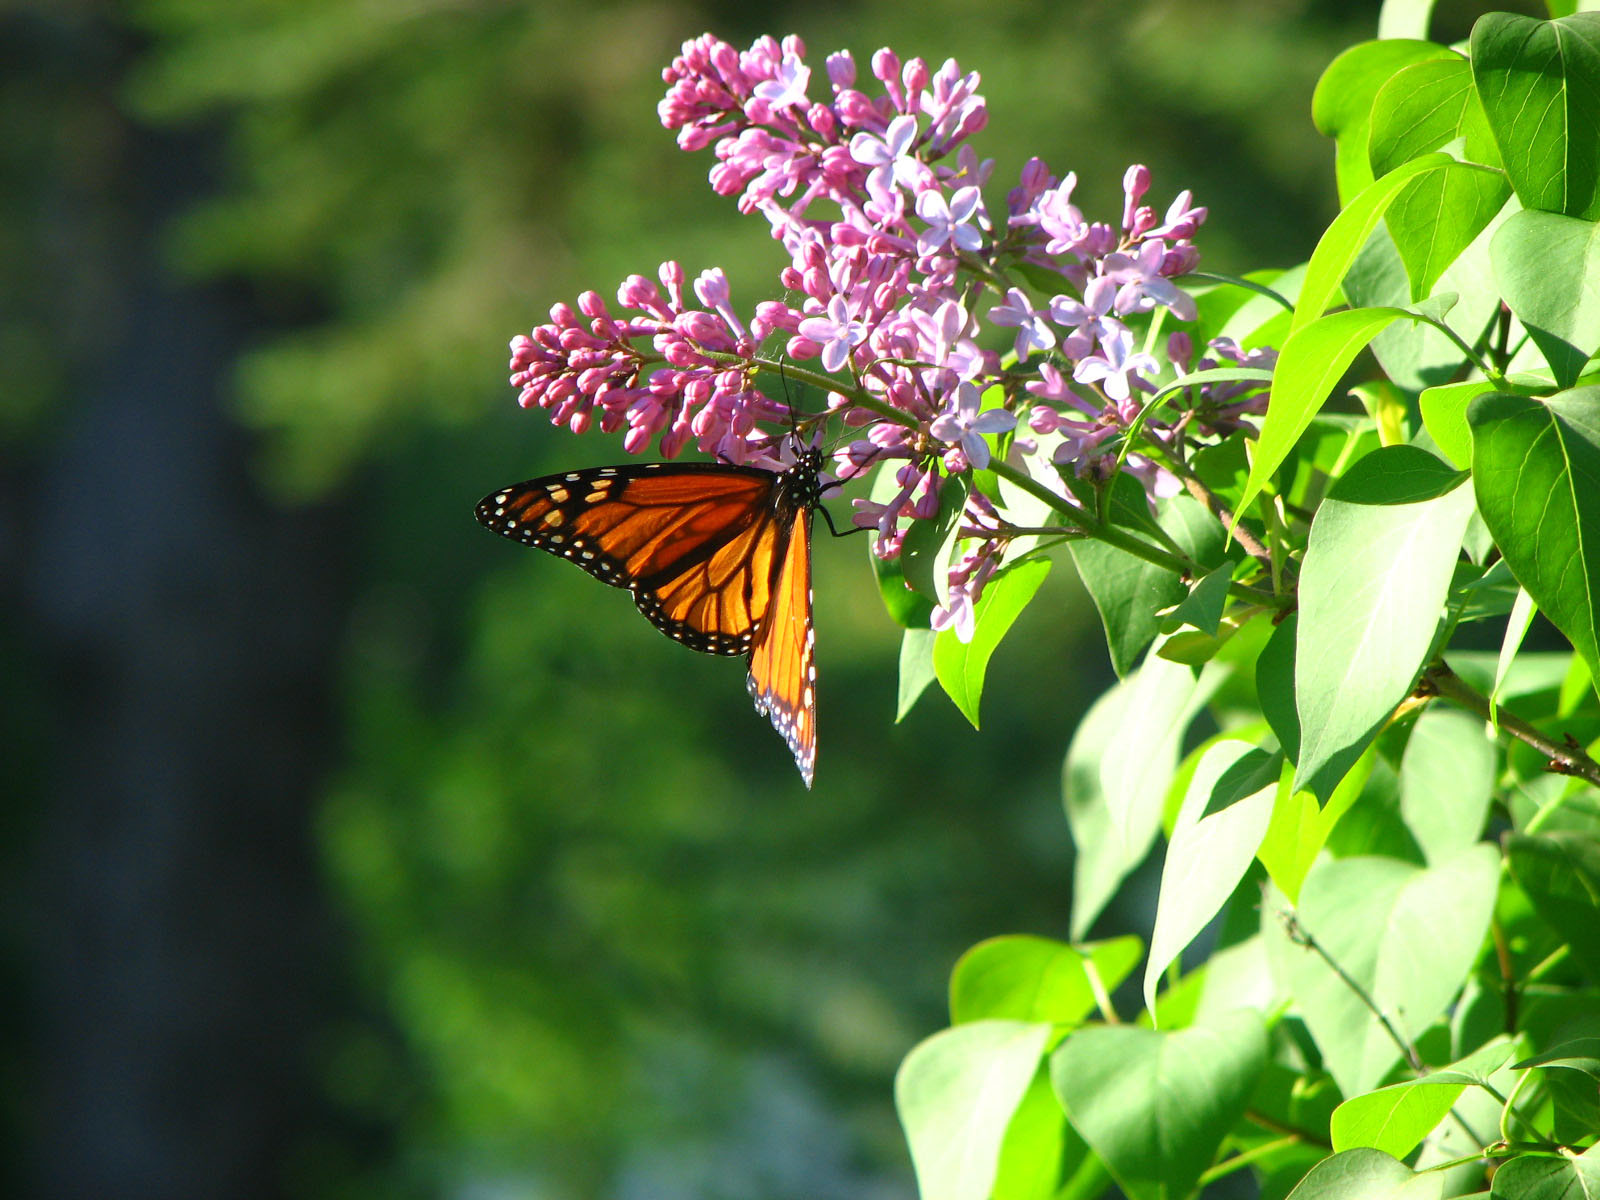 Fantastic Wallpaper Butterfly Spring - butterfly-hd-free-wallpapers-spring-season-free-hd  Collection_557511.jpg